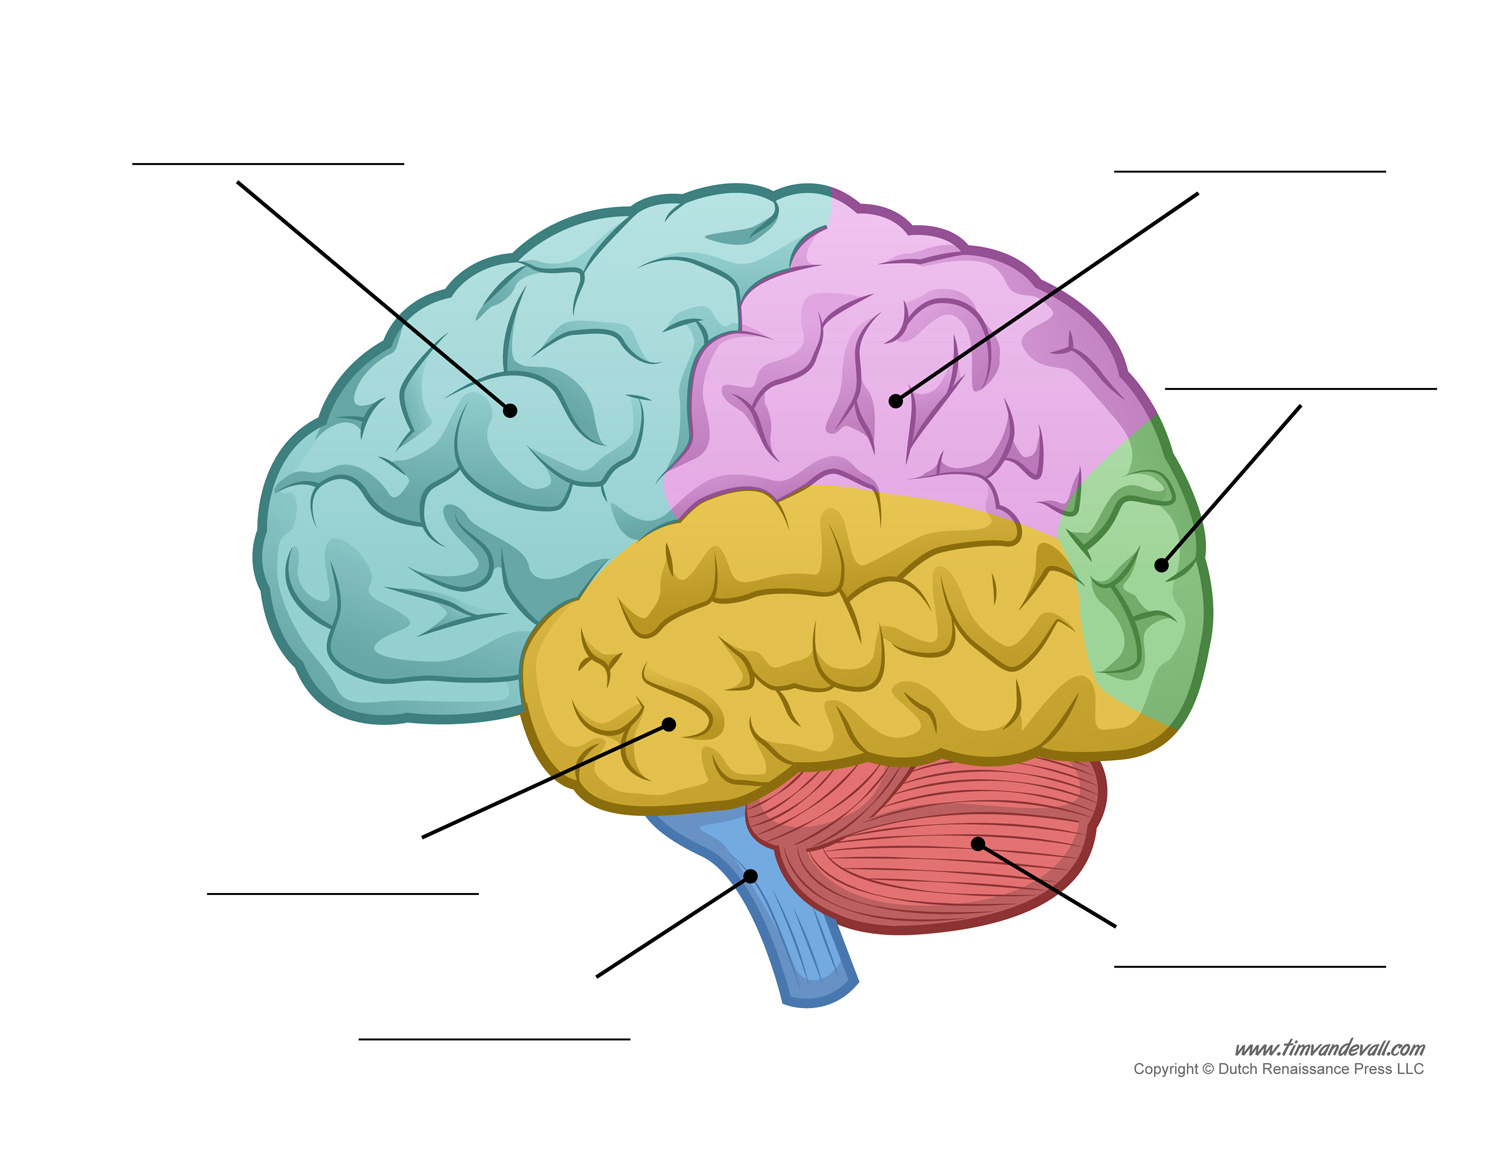 Brain Without Labels Brain Diagram Without Labels Human Brain